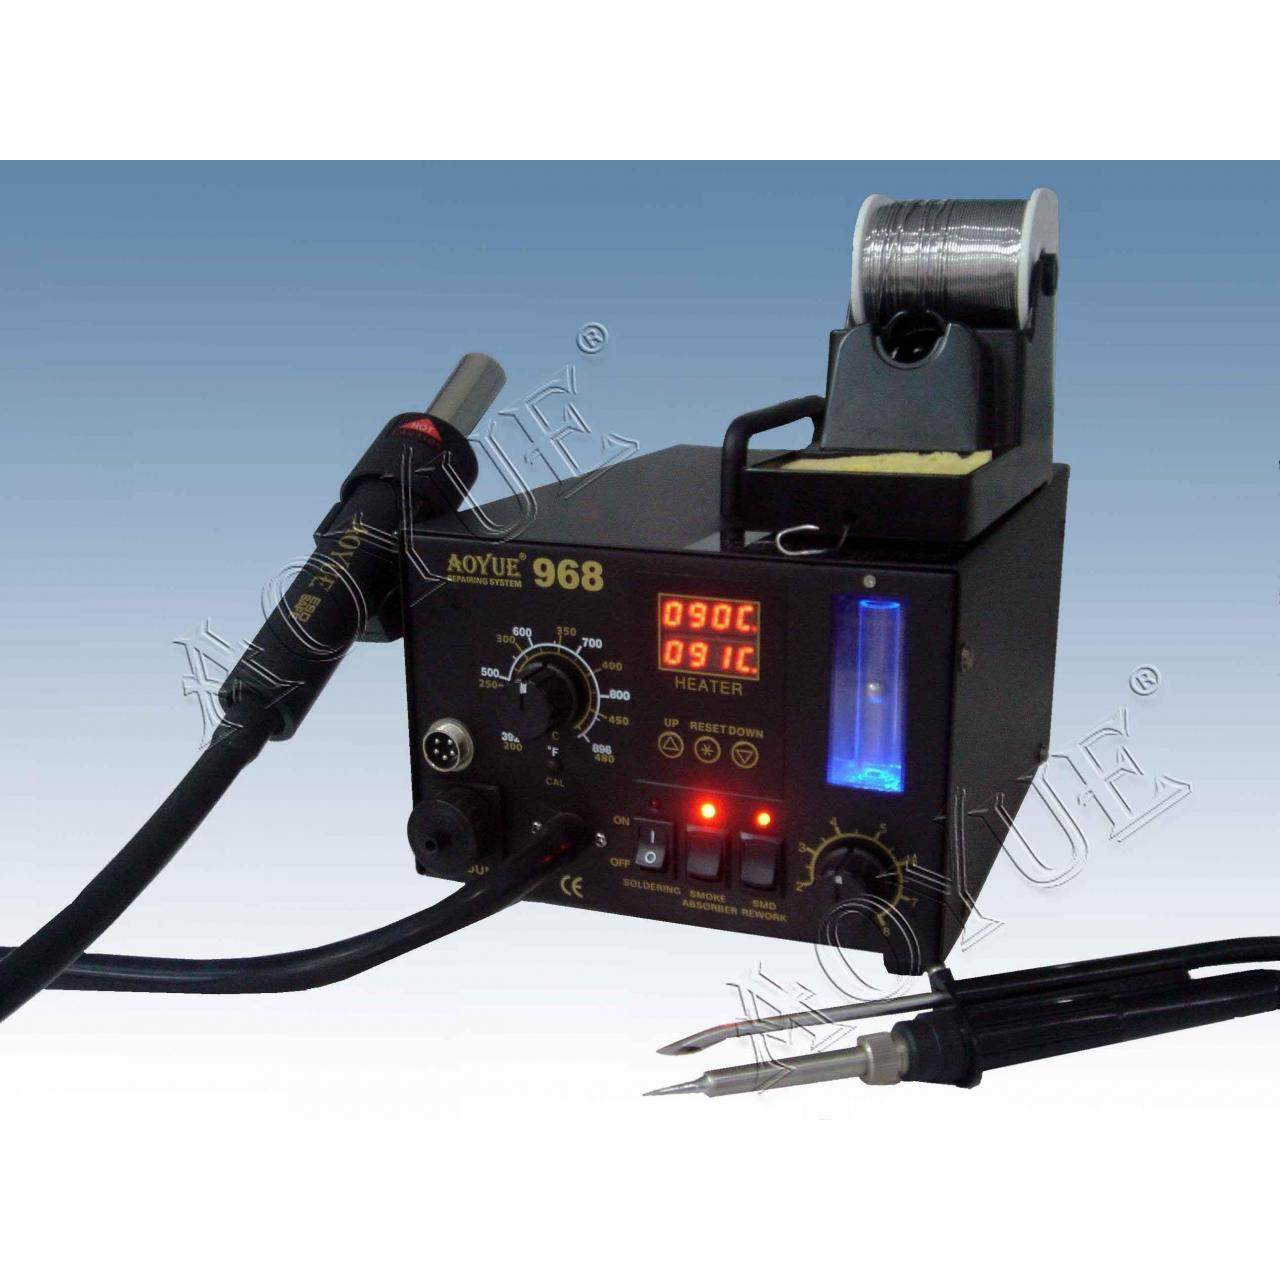 Buy cheap Aoyue 968 repair system 110V-220V from wholesalers